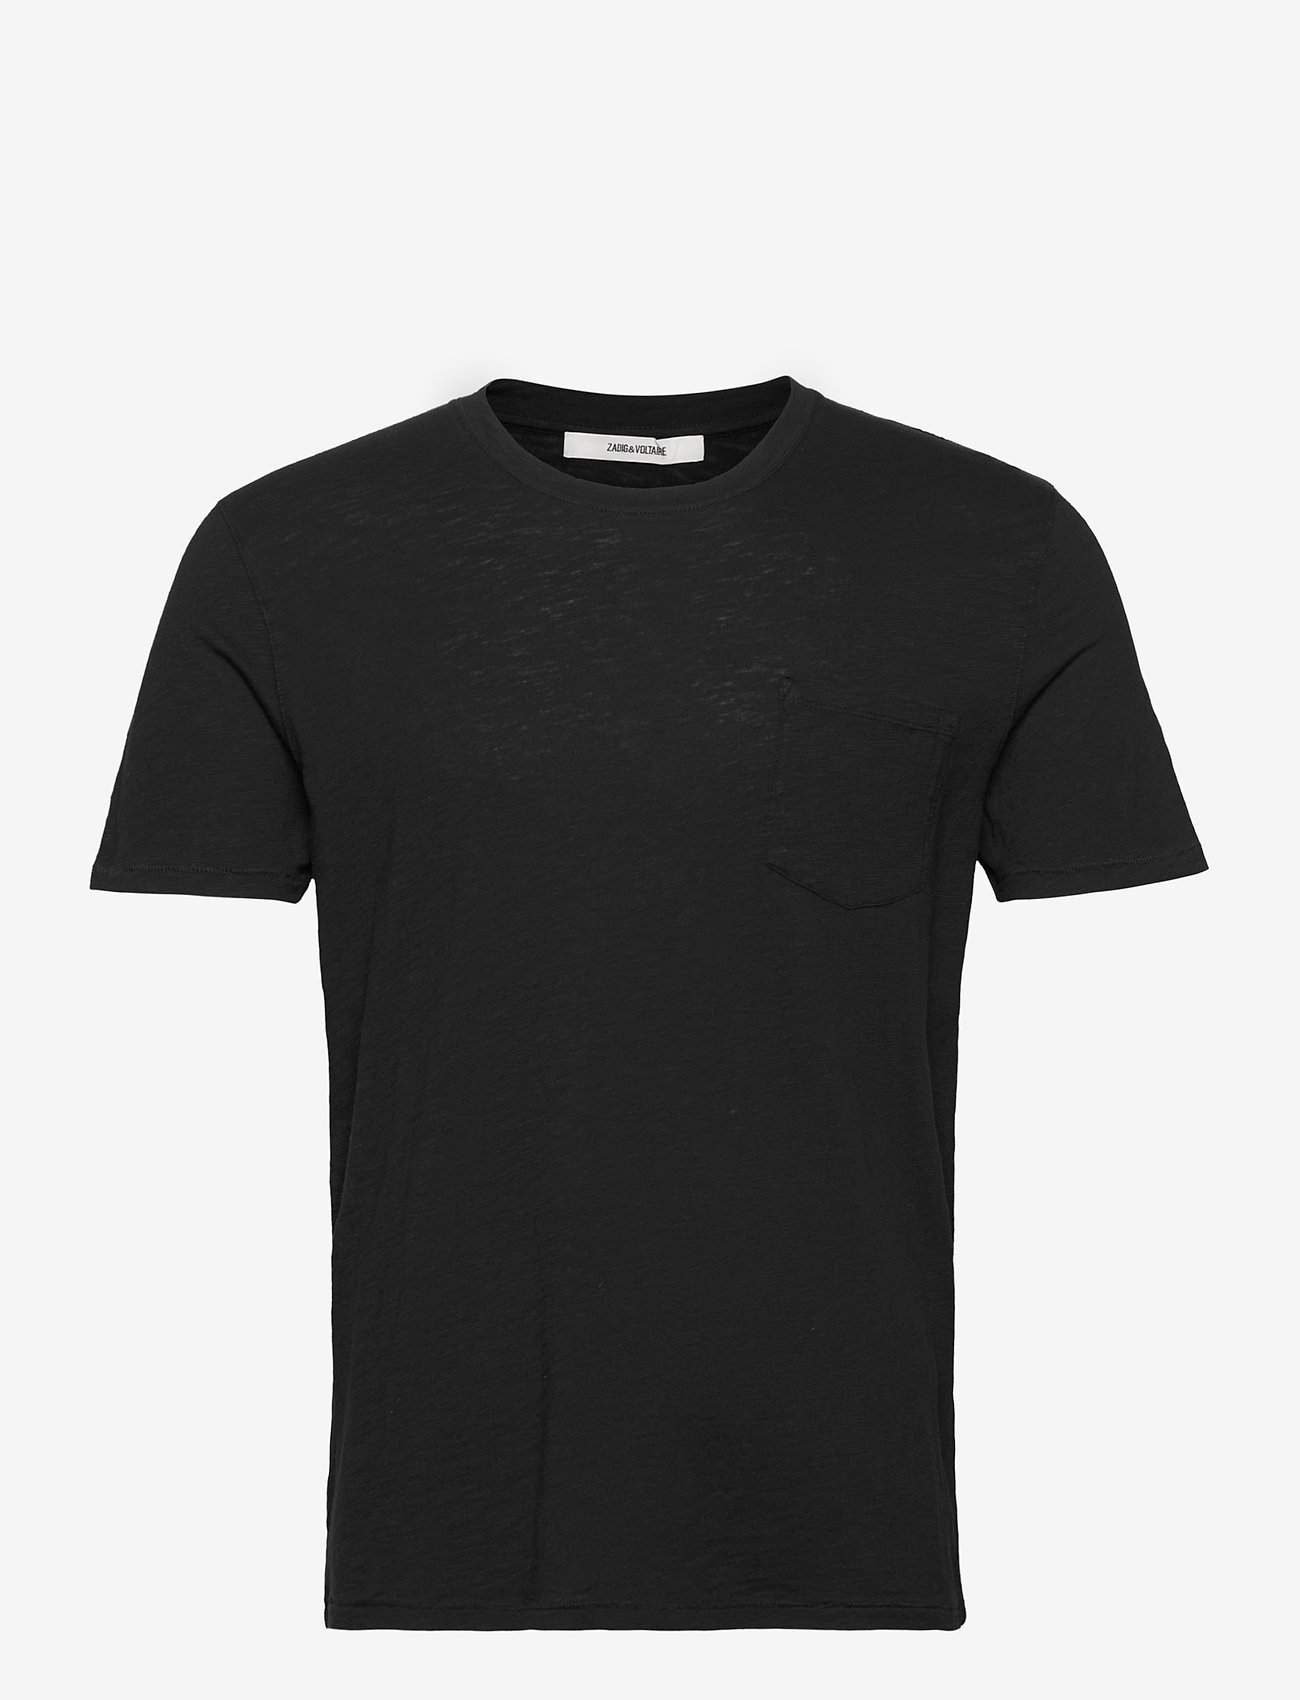 Zadig & Voltaire - STOCKHOLM COTTON SLUB - basic t-shirts - black - 1